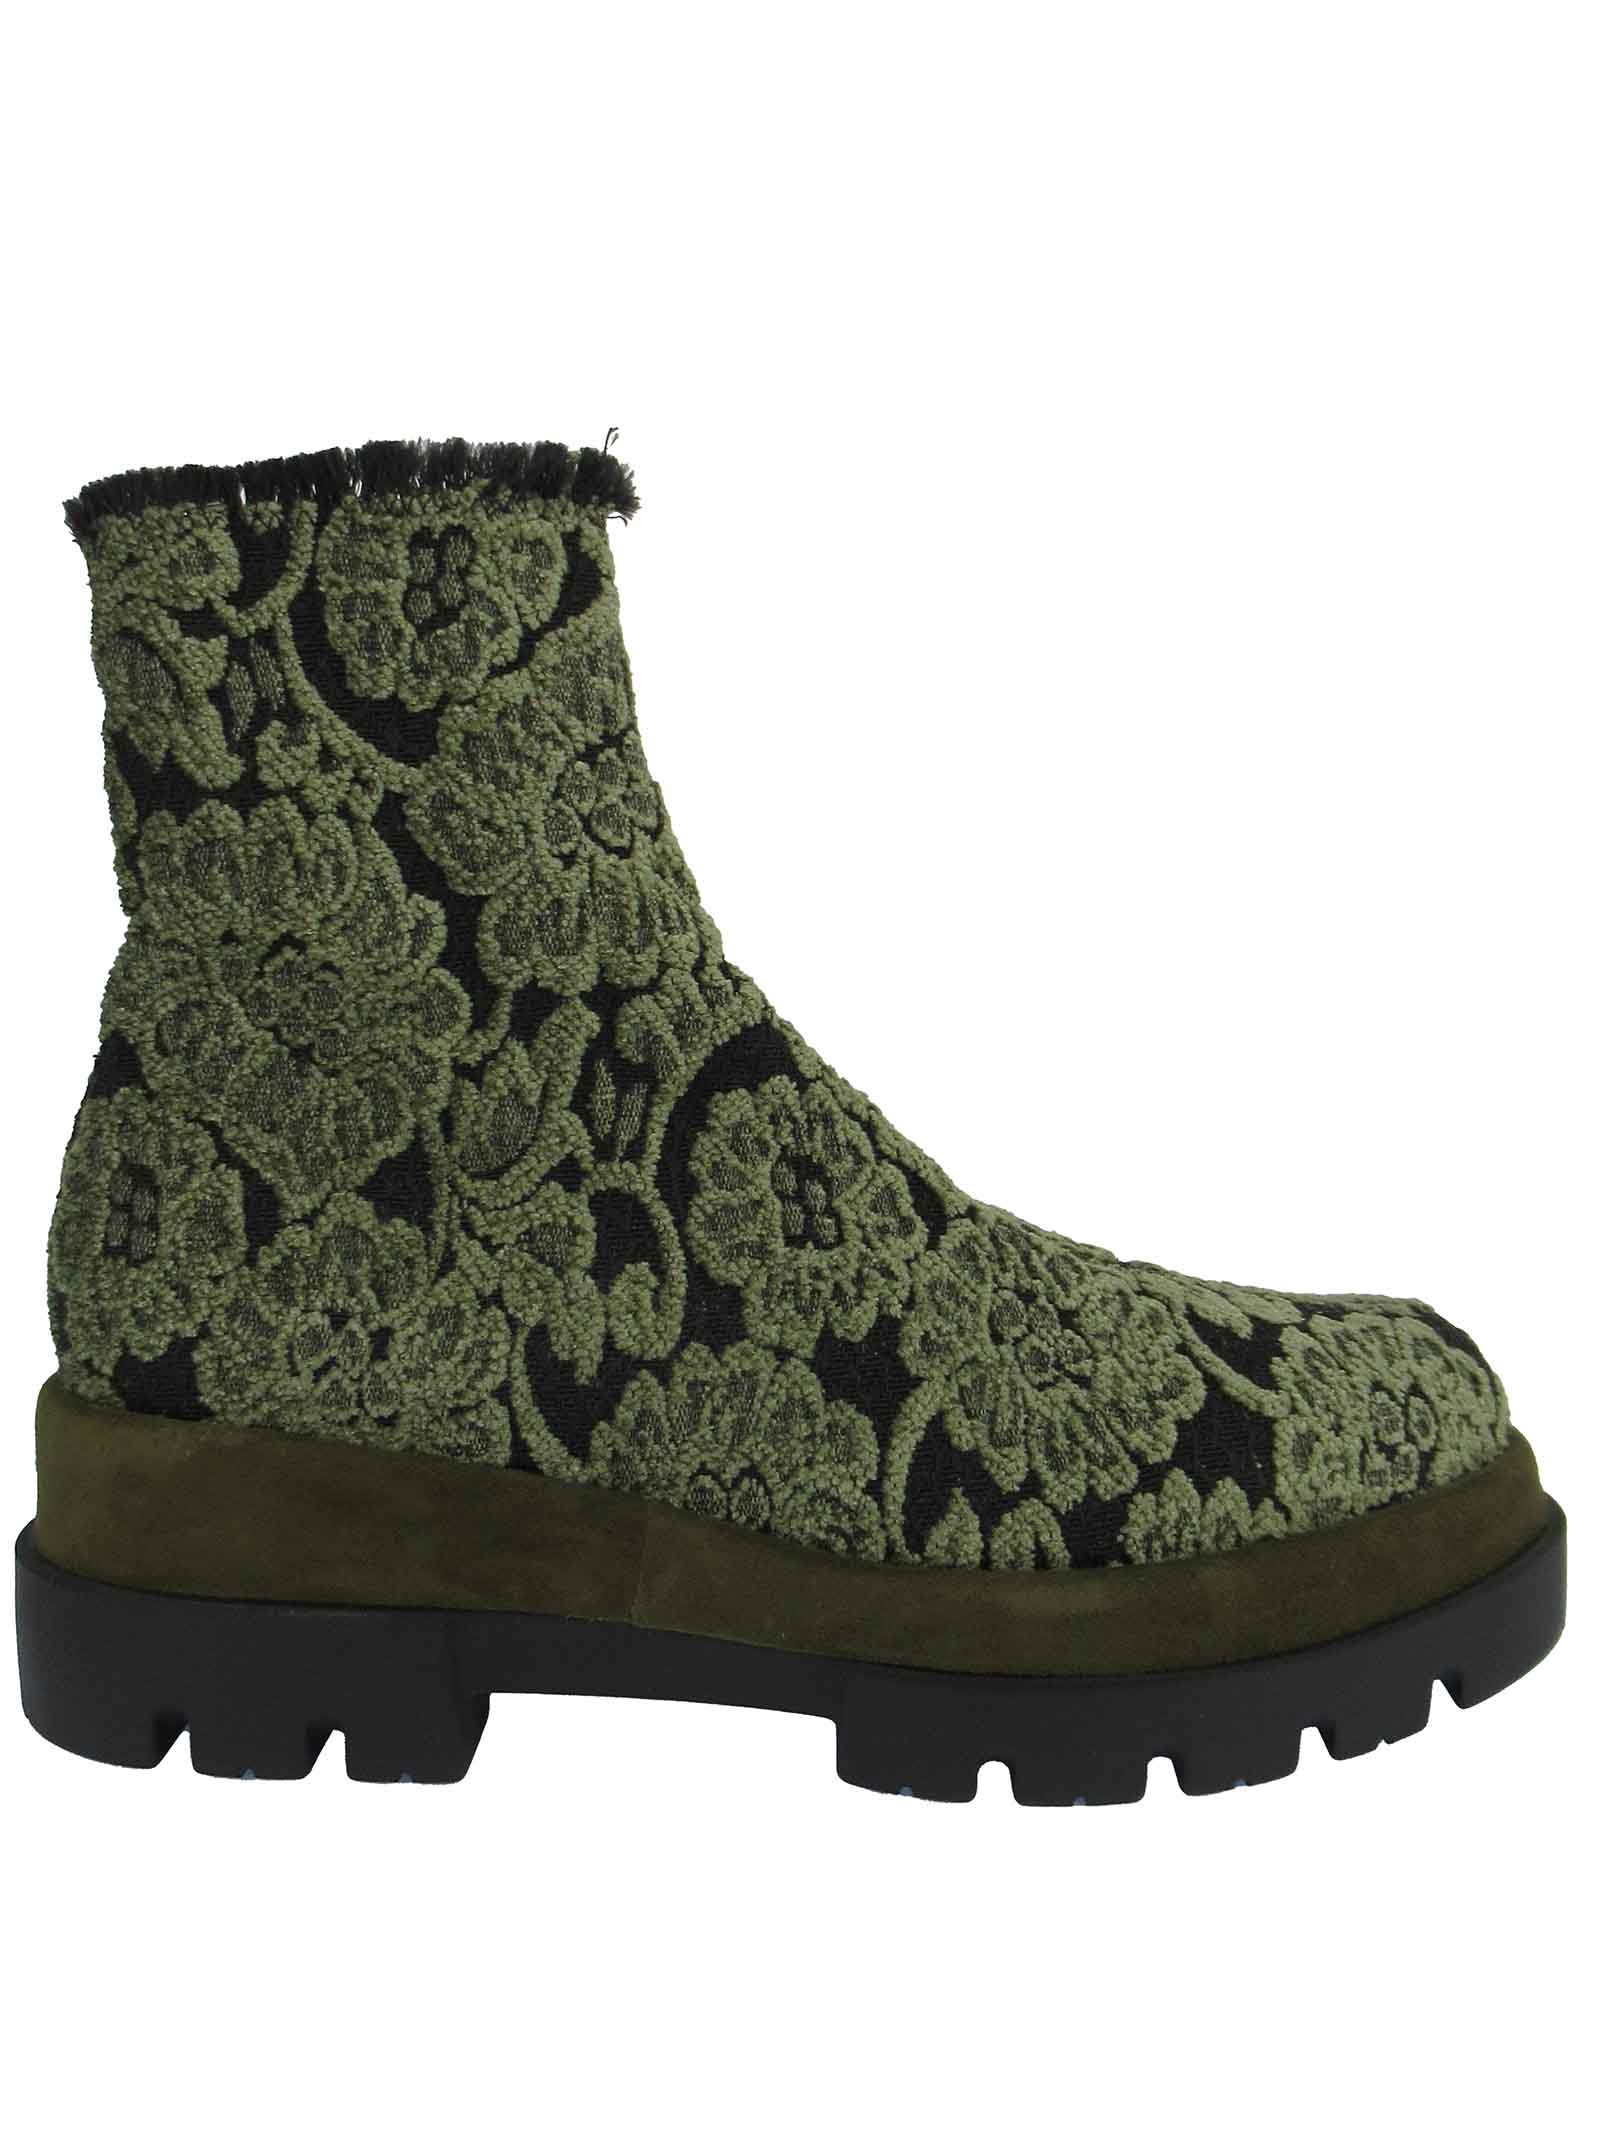 Women's Shoes Ankle Boots in Military Green Jacquard Elasticized Fabric with Rubber Wedge Tank Sole Le Babe | Ankle Boots | 313006